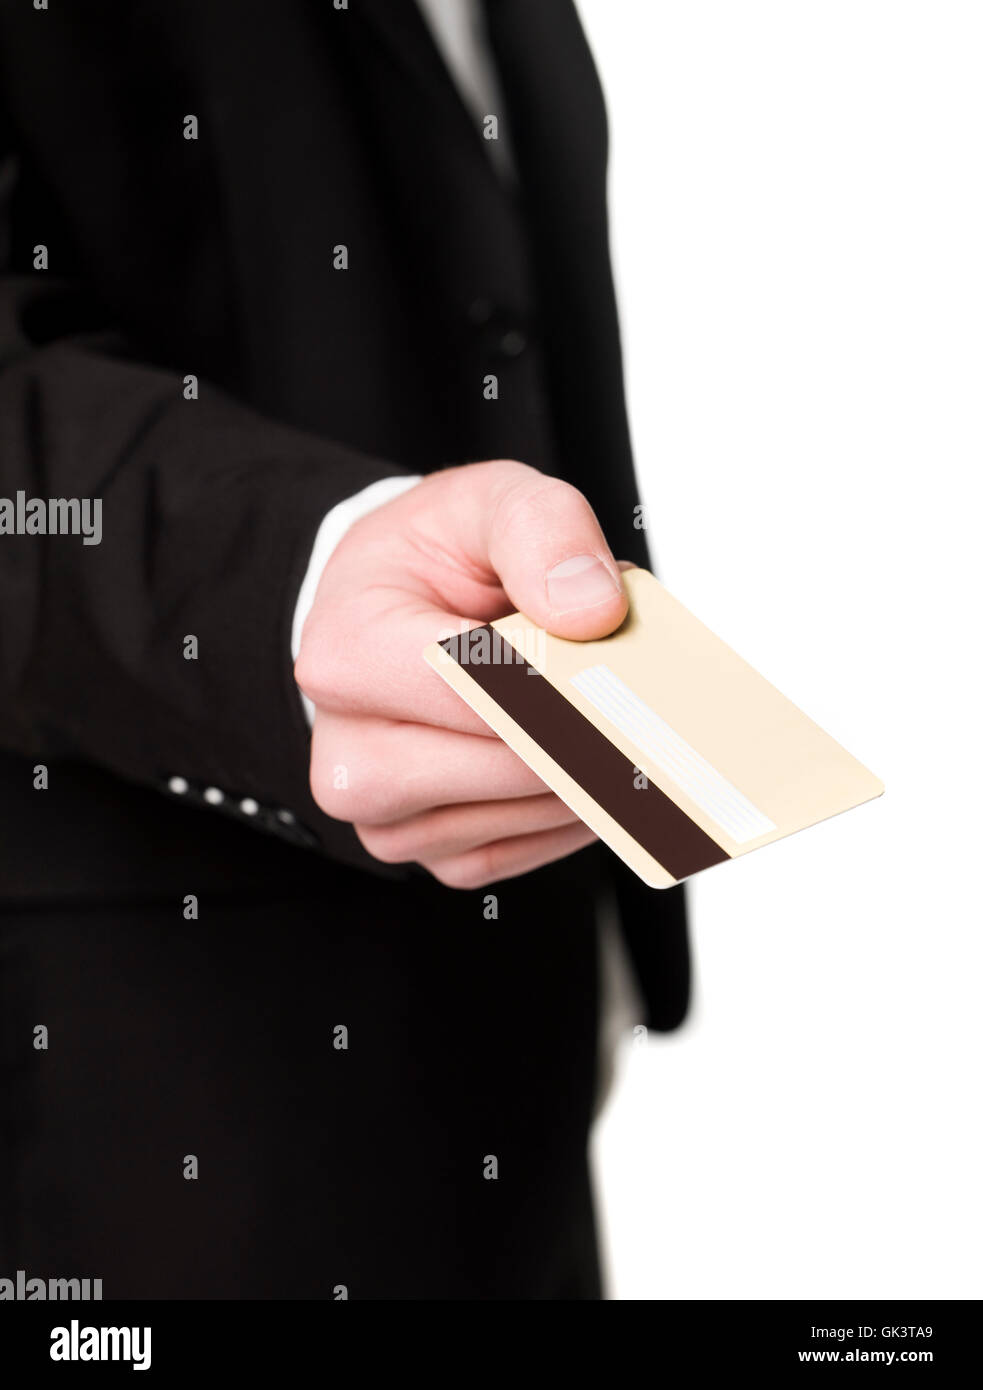 pay rich wealthy - Stock Image